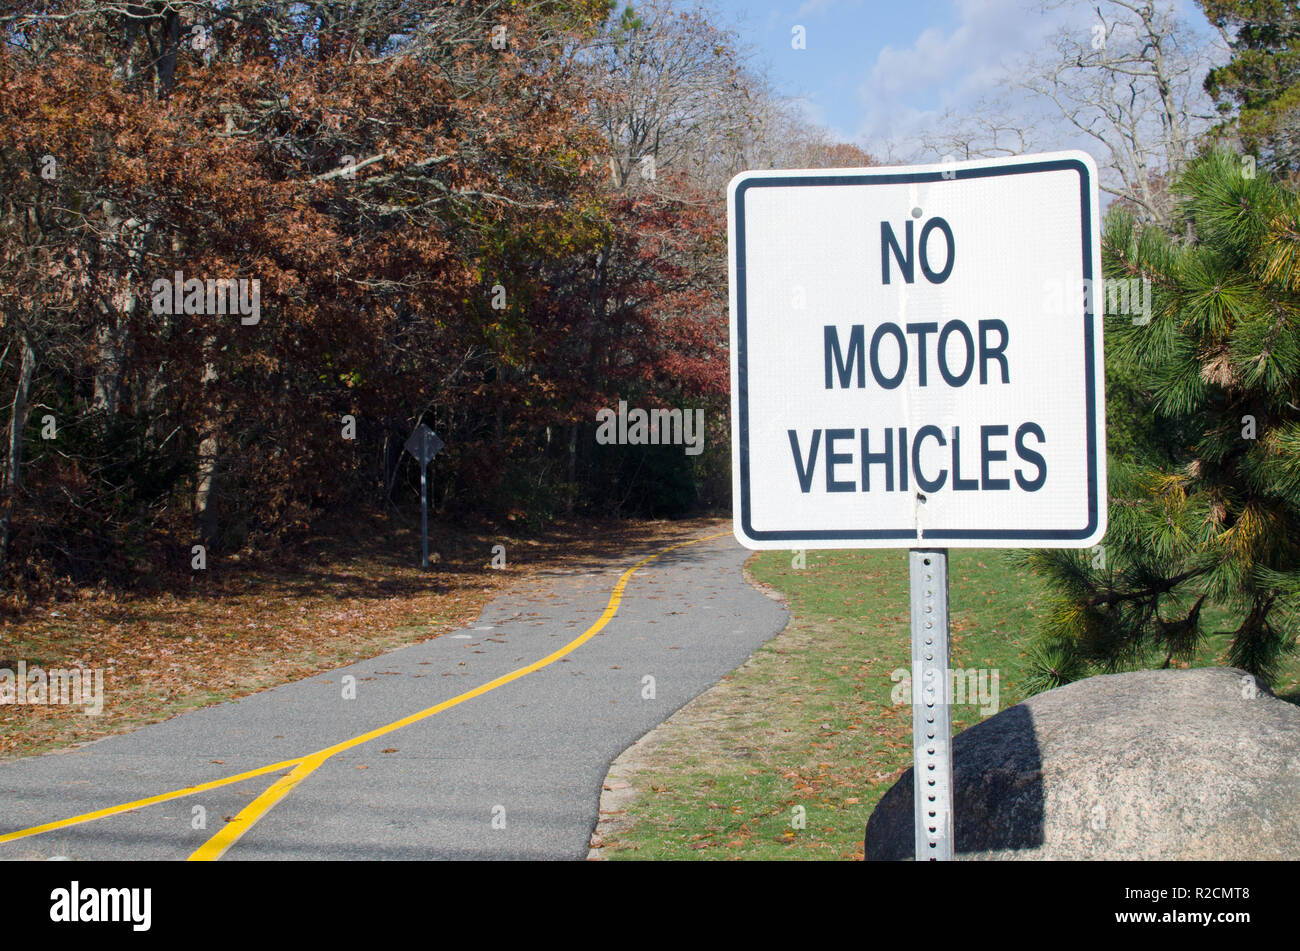 No Motor Vehicles sign on the paved Shining Sea Bikeway Falmouth, Cape Cod bike and walking path in late autumn - Stock Image